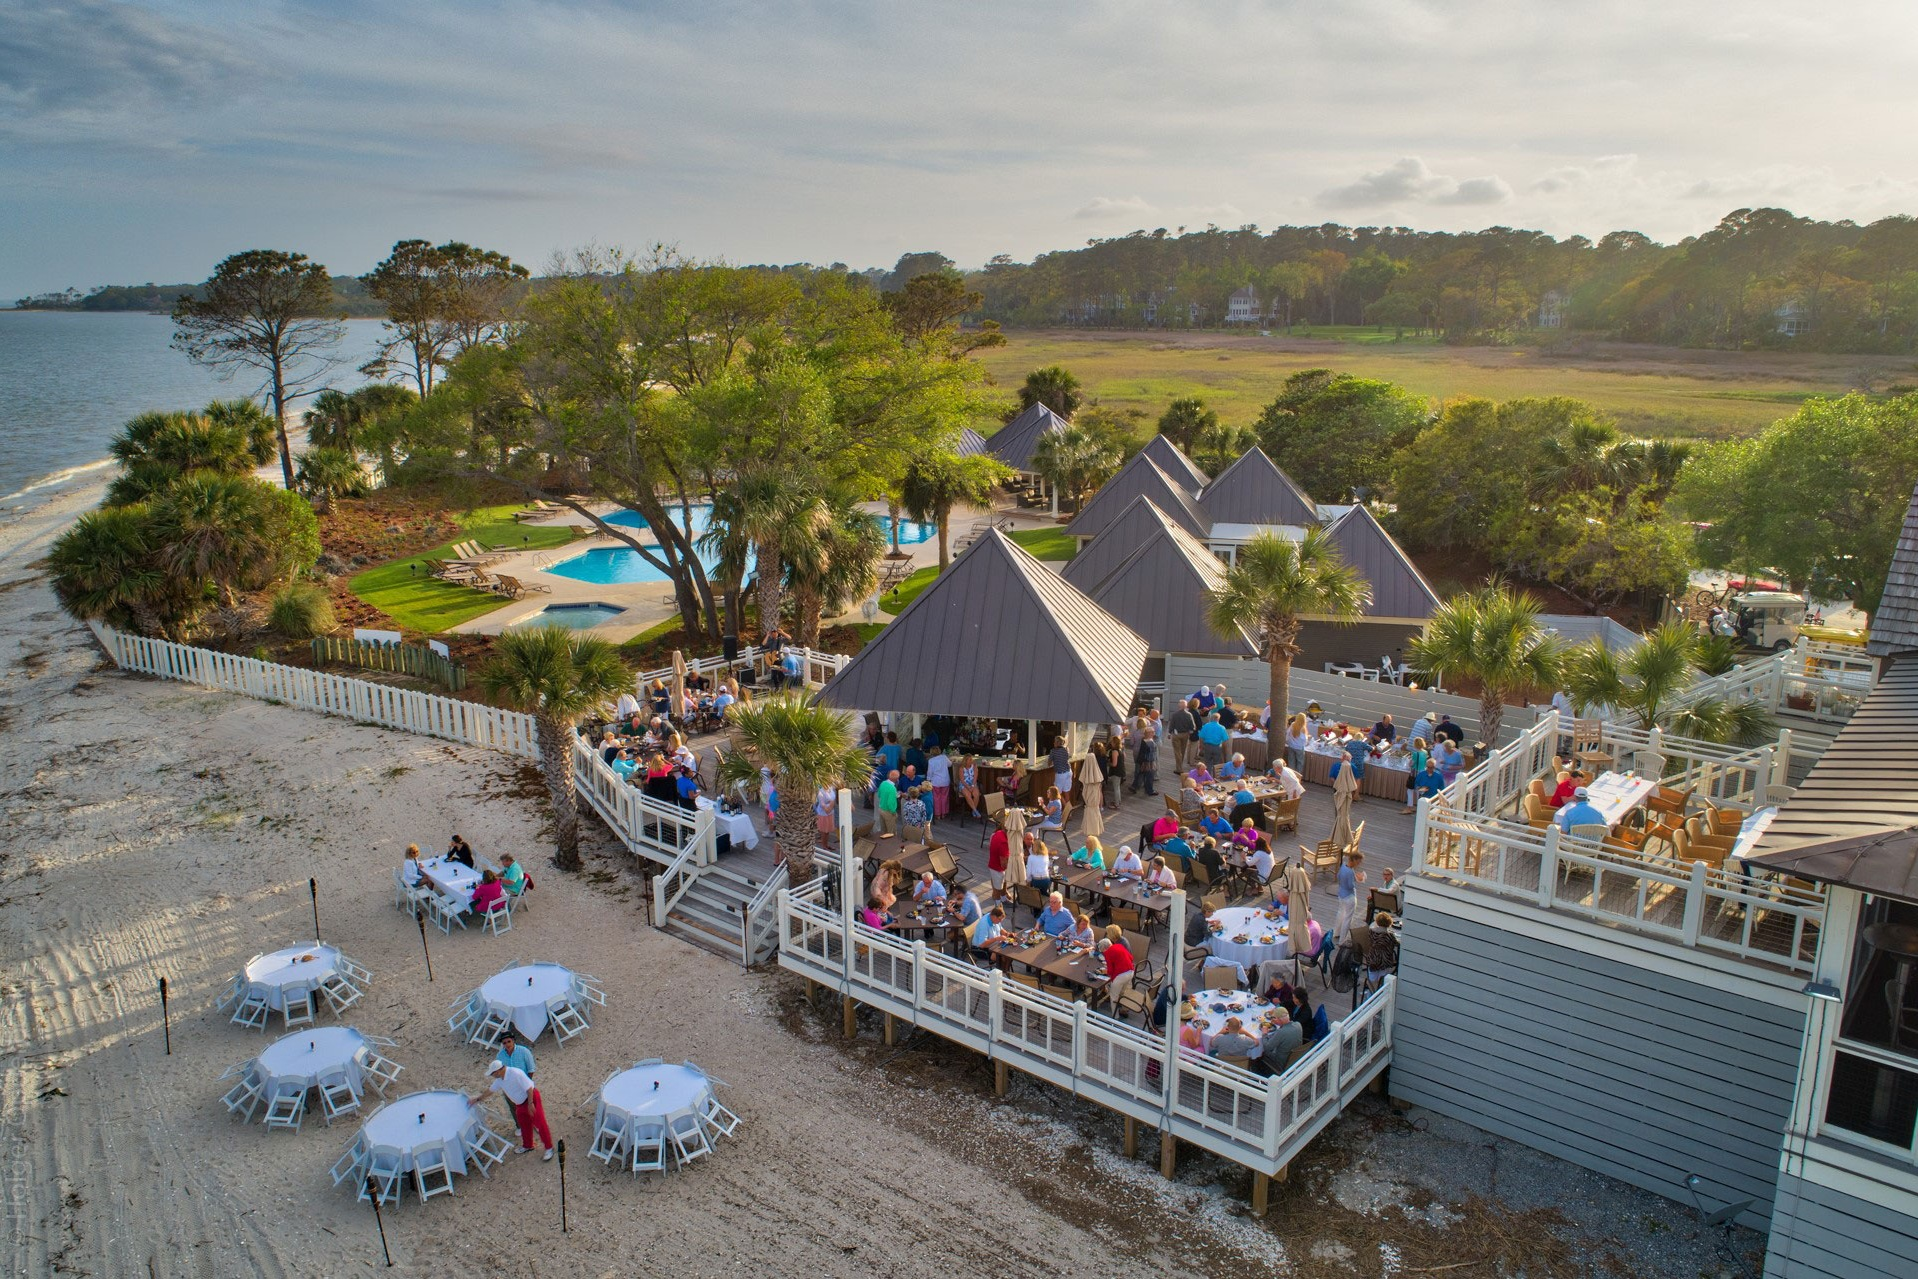 Daufuskie Island Vibes and Tides - October 17th - 20th, 2019Taste and explore the world of food and drink like never before.Vibes + Tides is Daufuskie Island's newest all-inclusive event, offering the exclusive amenities of Haig Point with the perfect blend of food from around the southeast. Meet and taste the very best from award-winning chefs, tastemakers, winemakers and more. Gather with friends as you take an indulgent tour of an Island rich in history and southern culture.